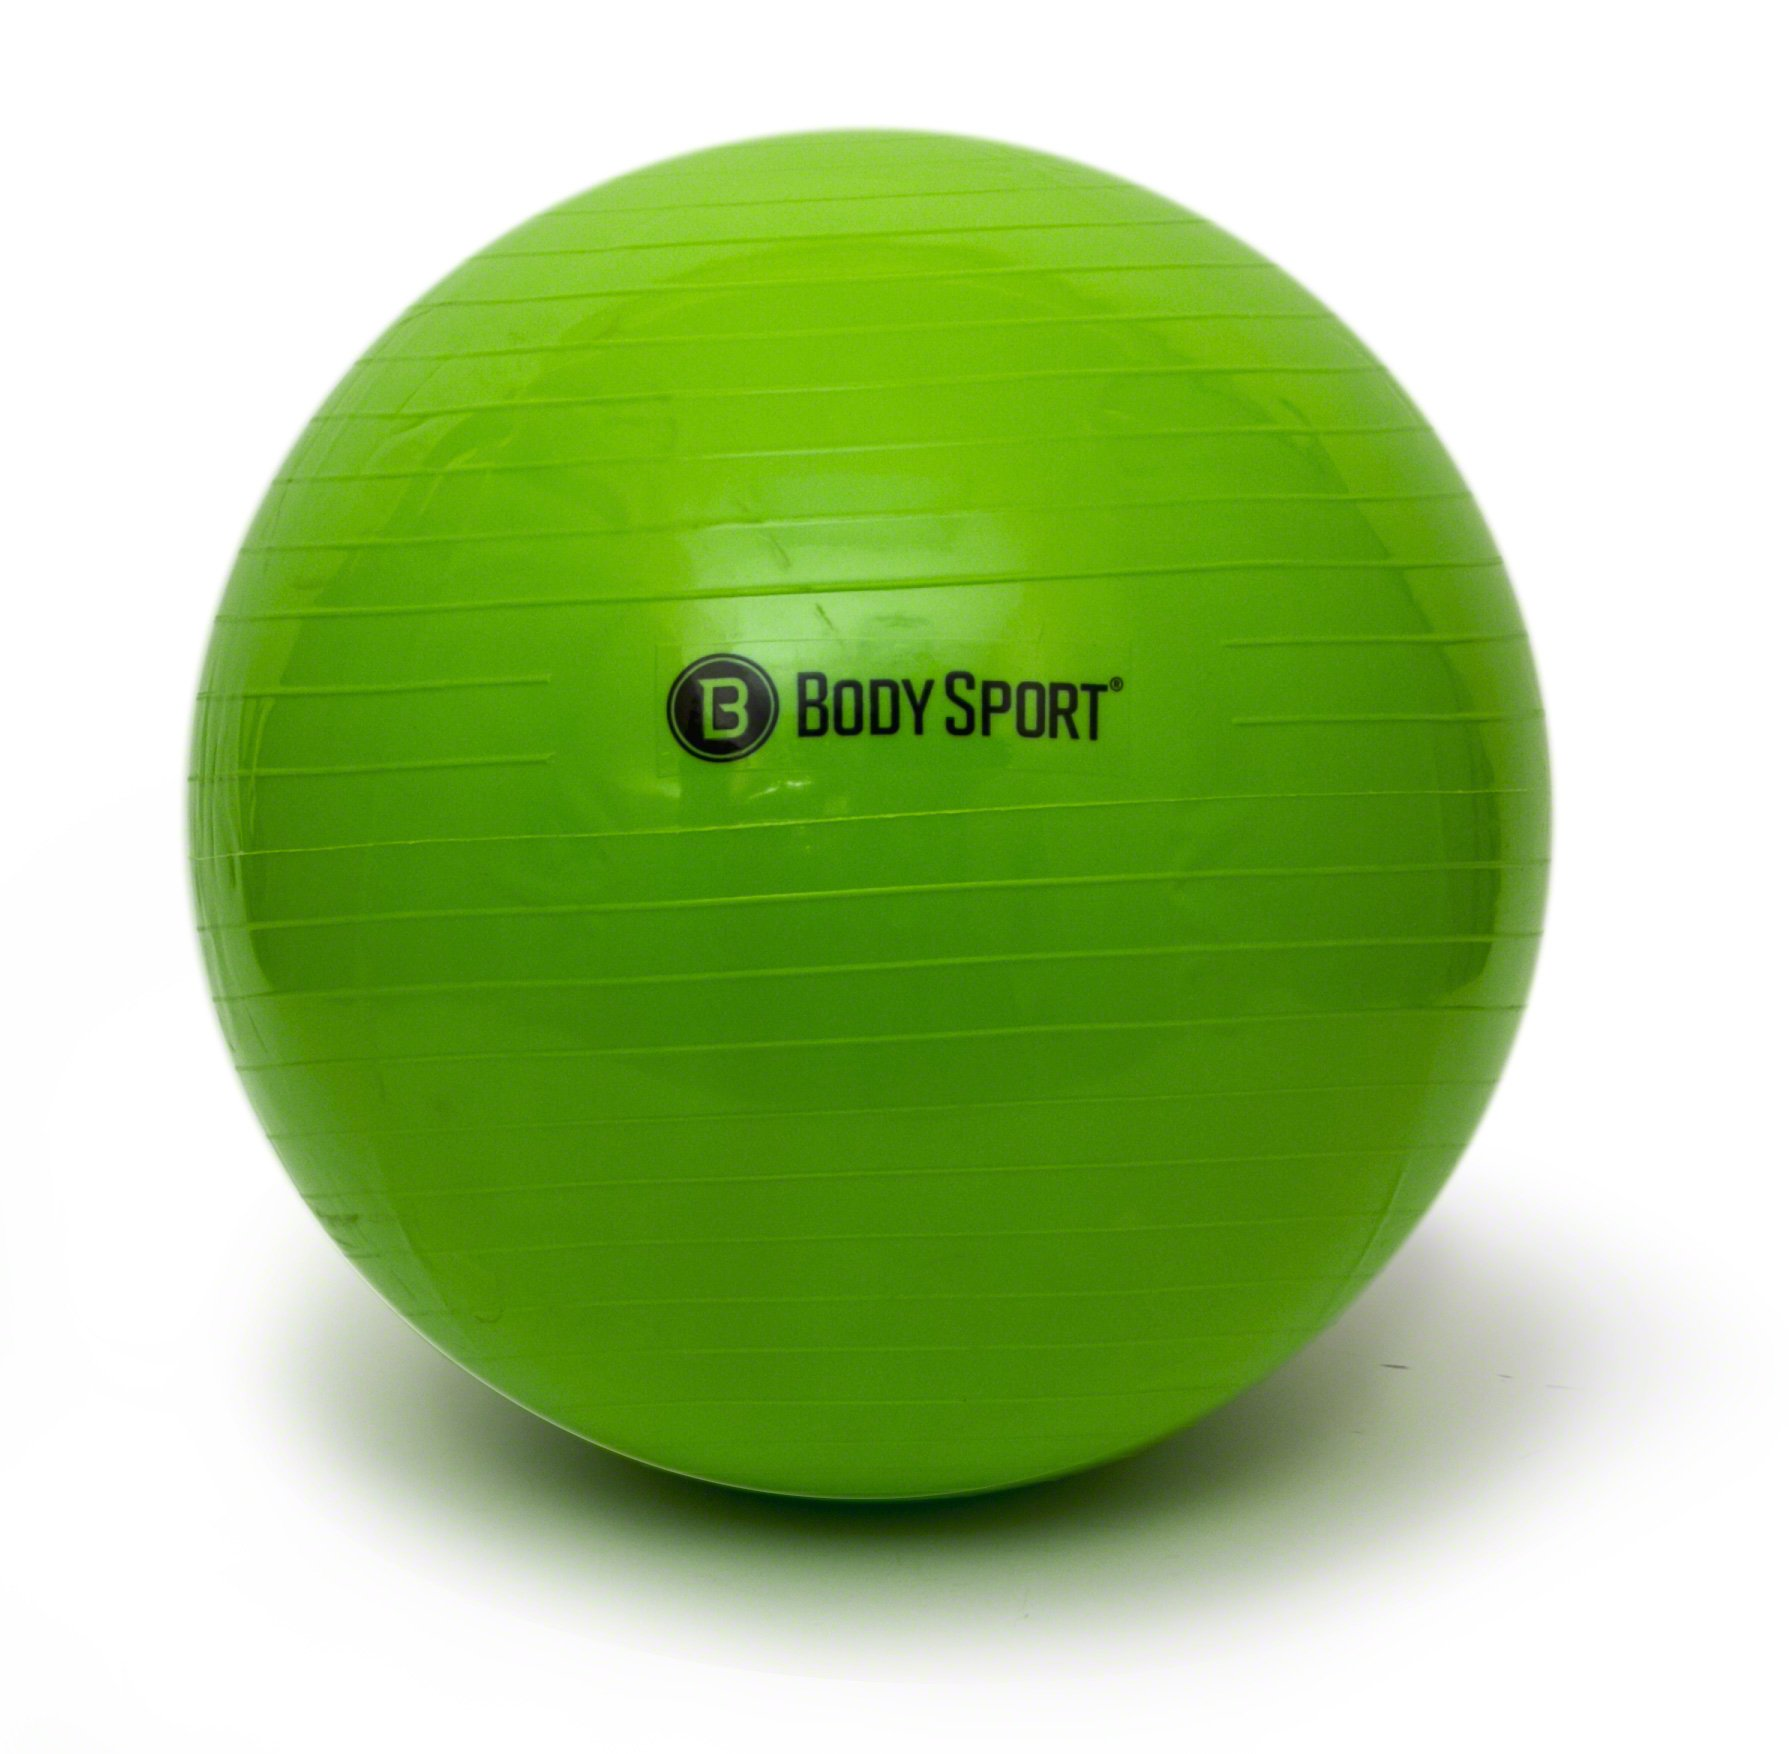 Body Sport Exercise Ball with Pump for Home, Gym, Balance, Stability, Pilates, Core Strength, Stretching, Yoga, Fitness Facilities, Desk Chairs - Green 55cm